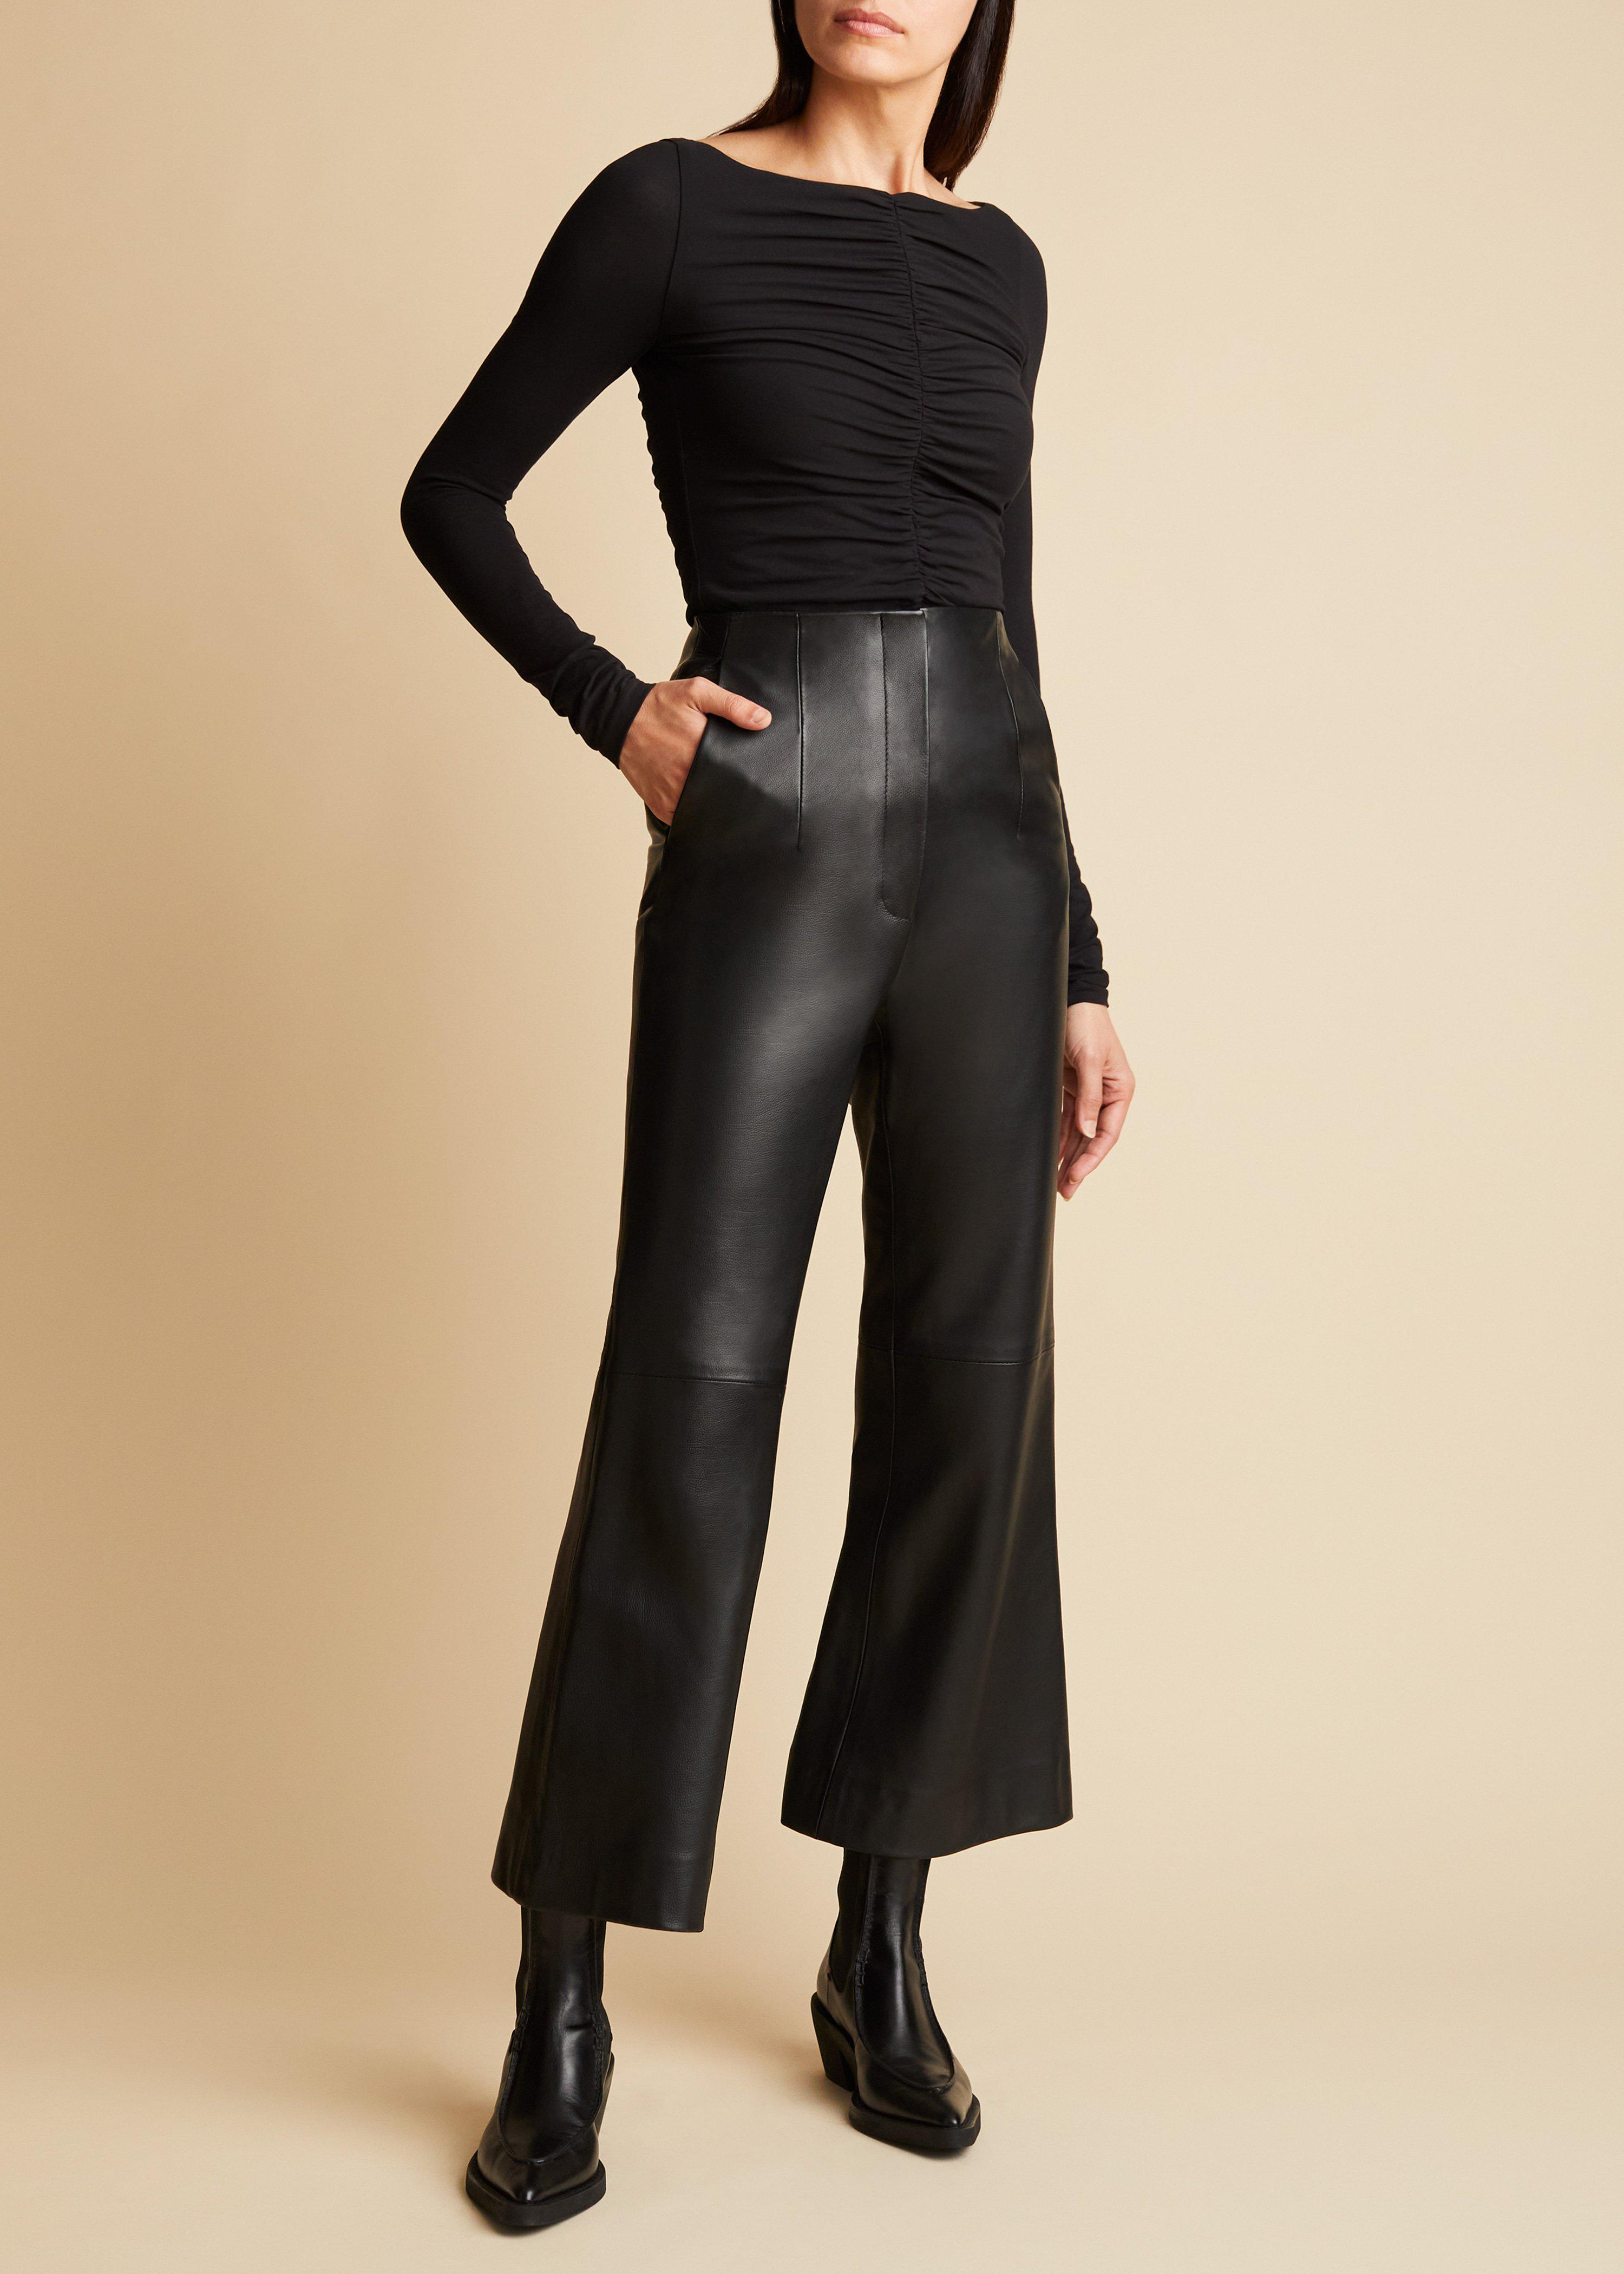 The Haley Pant in Black Leather